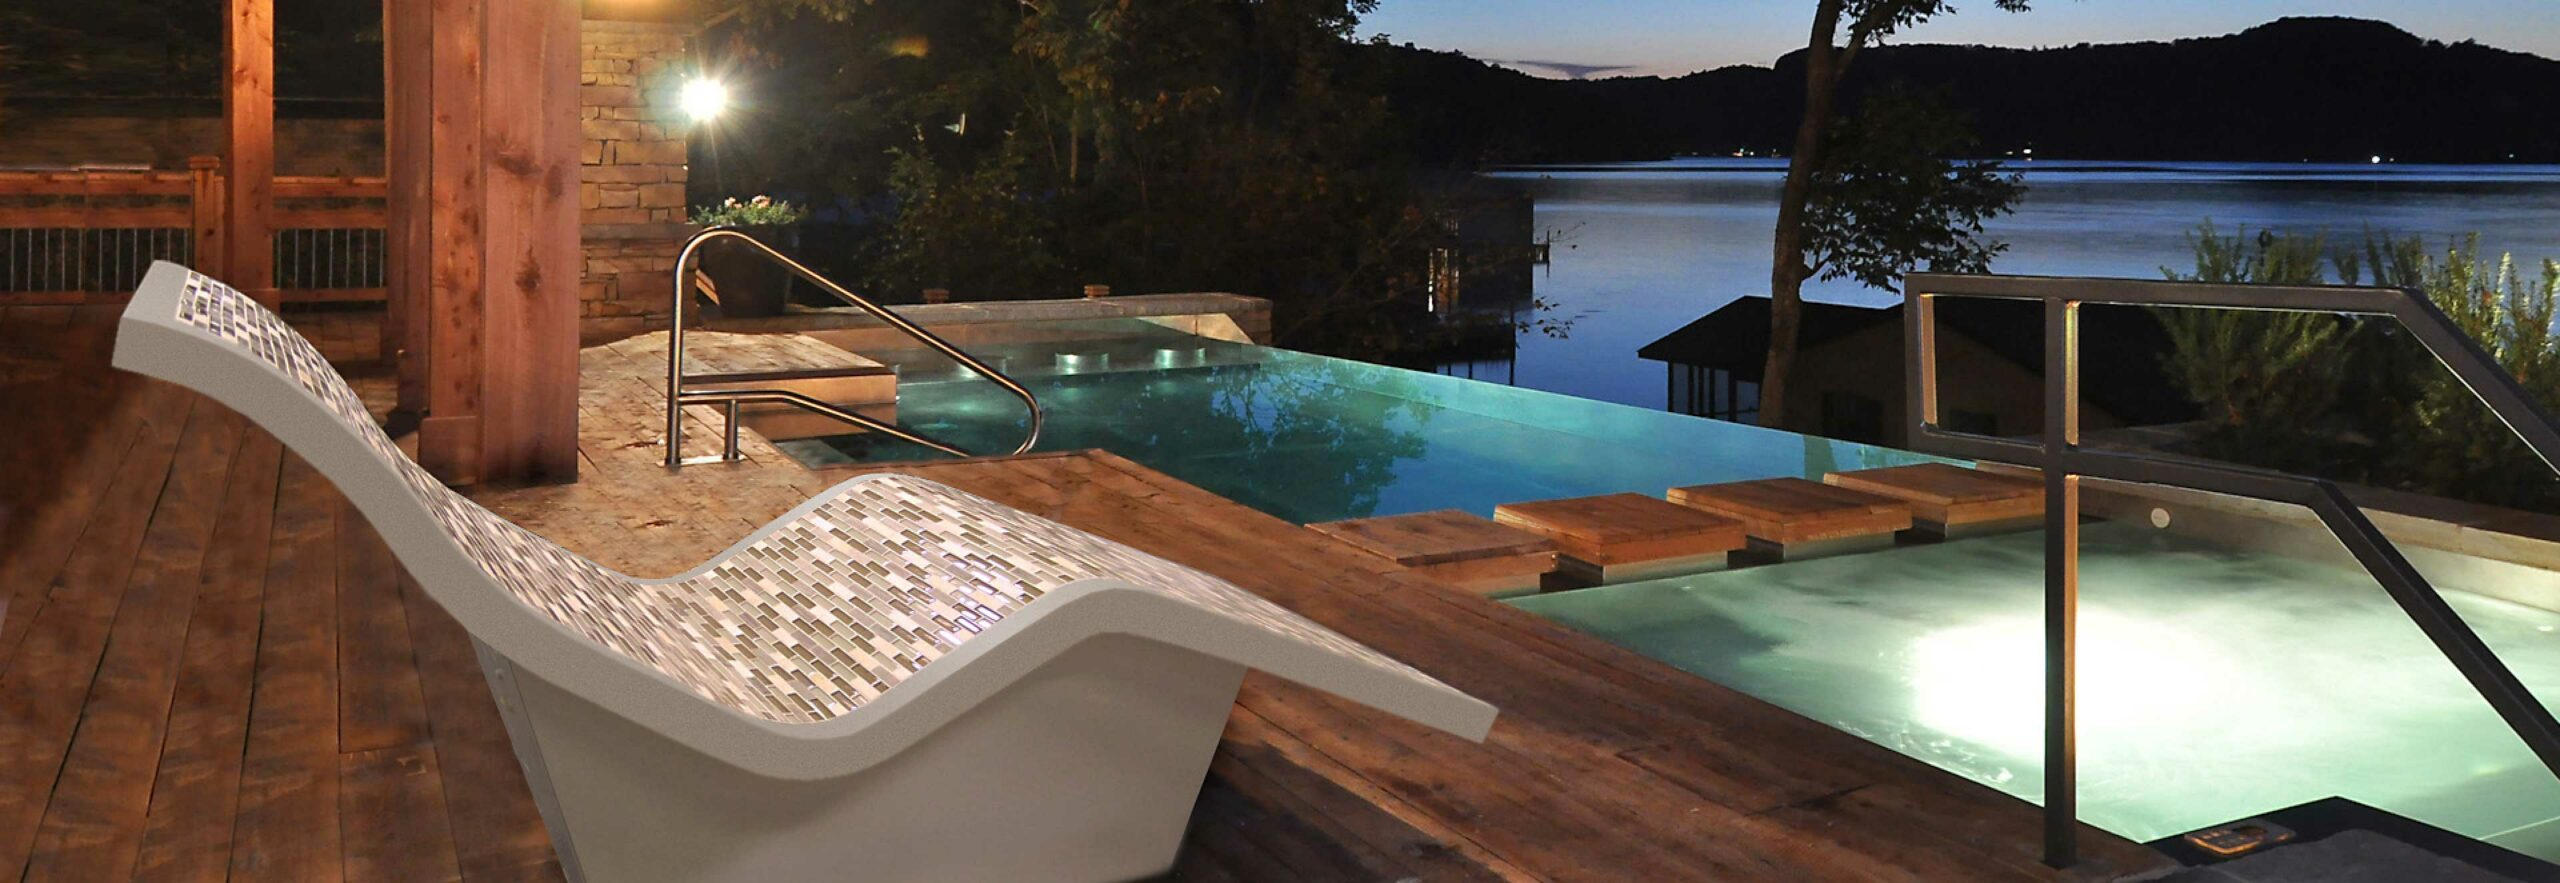 http://Bradford%20Home%20Heated%20Lounger%20-%20Tile%20Inlay